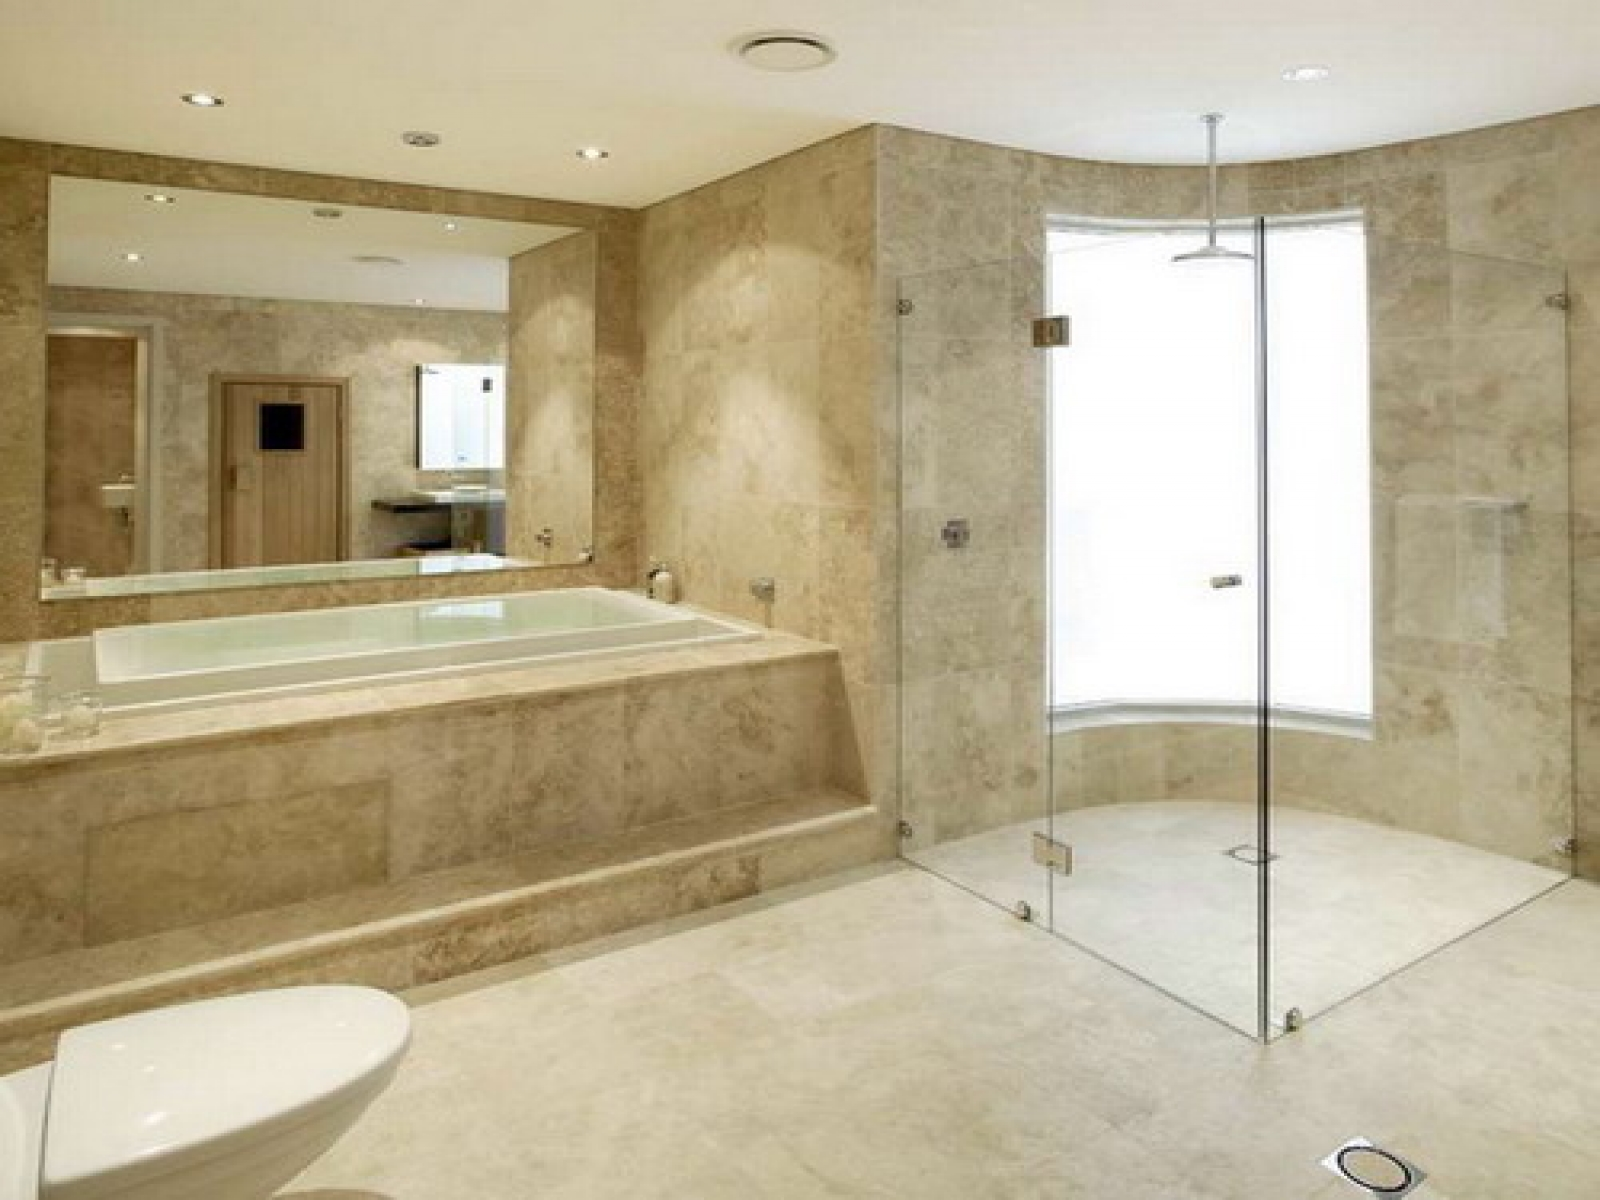 20 amazing pictures and ideas of travertine shower tile for Imagenes de banos decorados